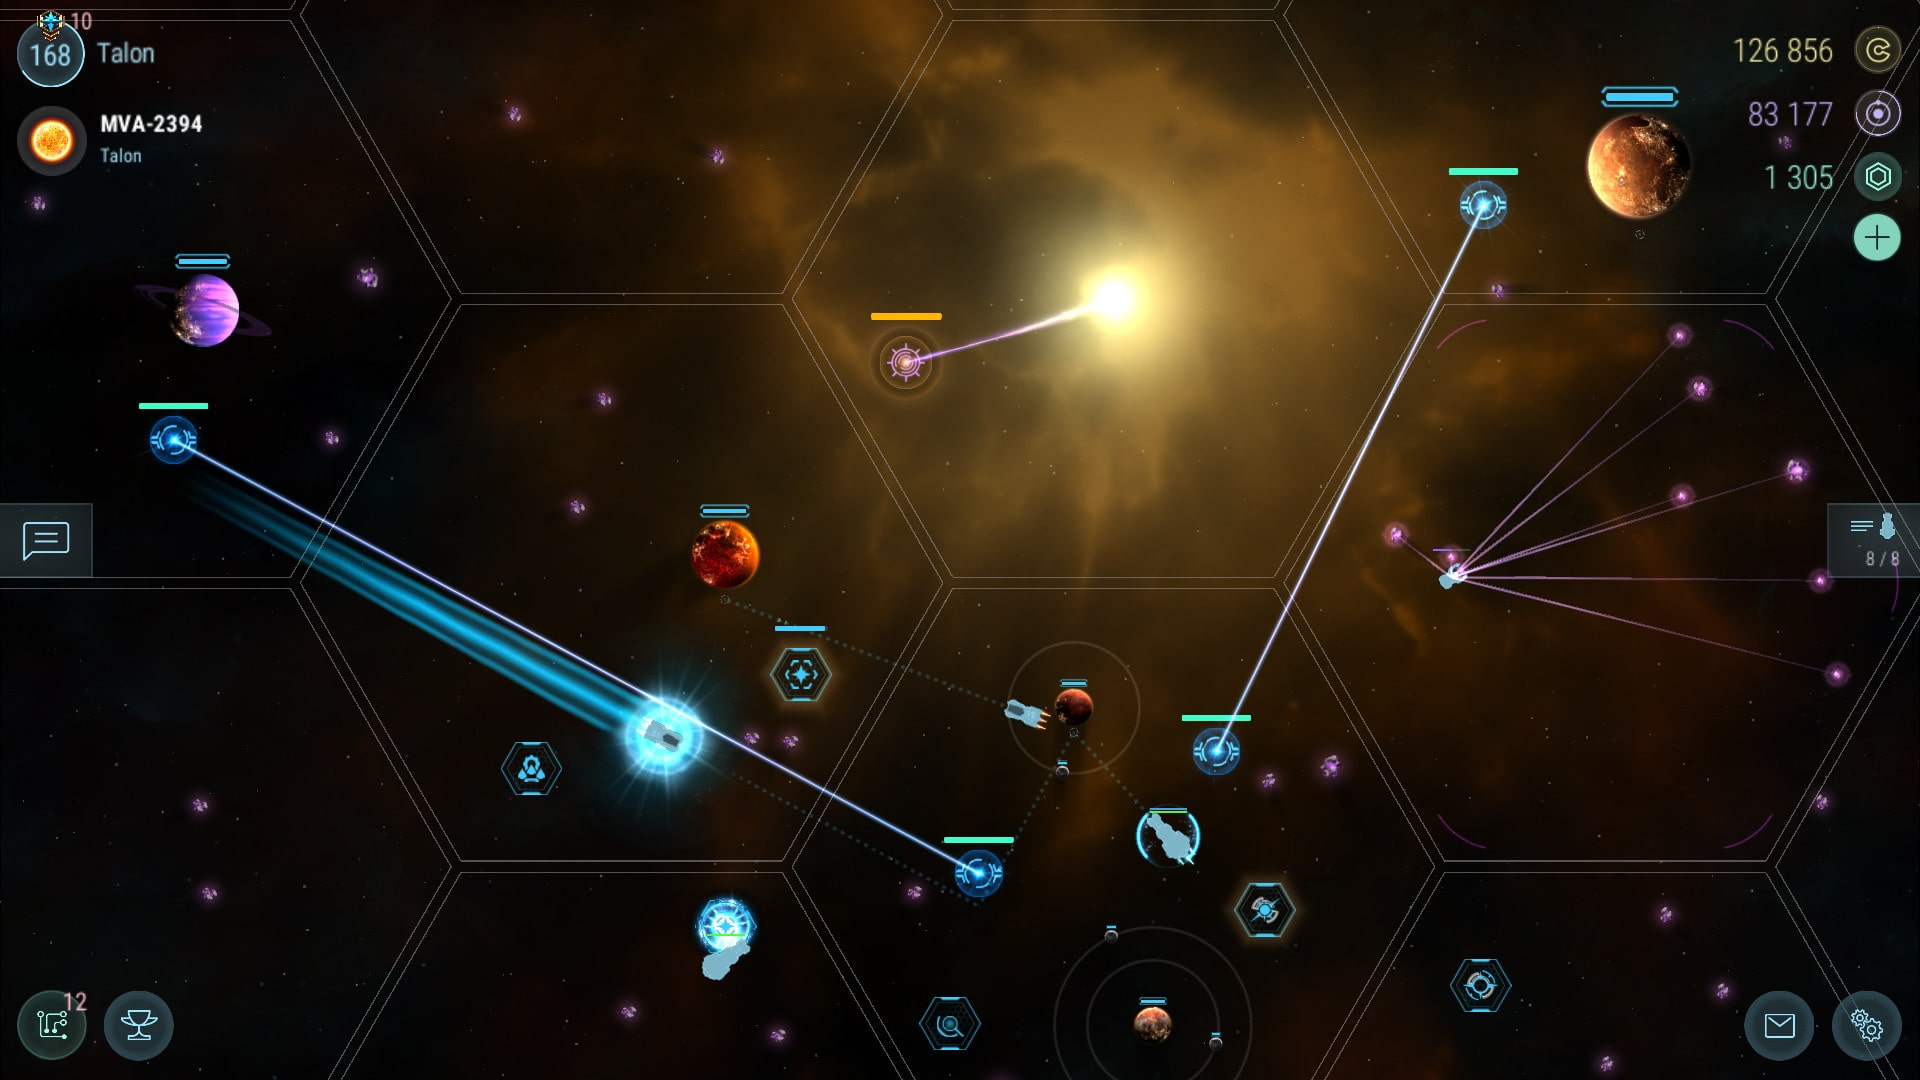 Hades' Star Screenshot 3